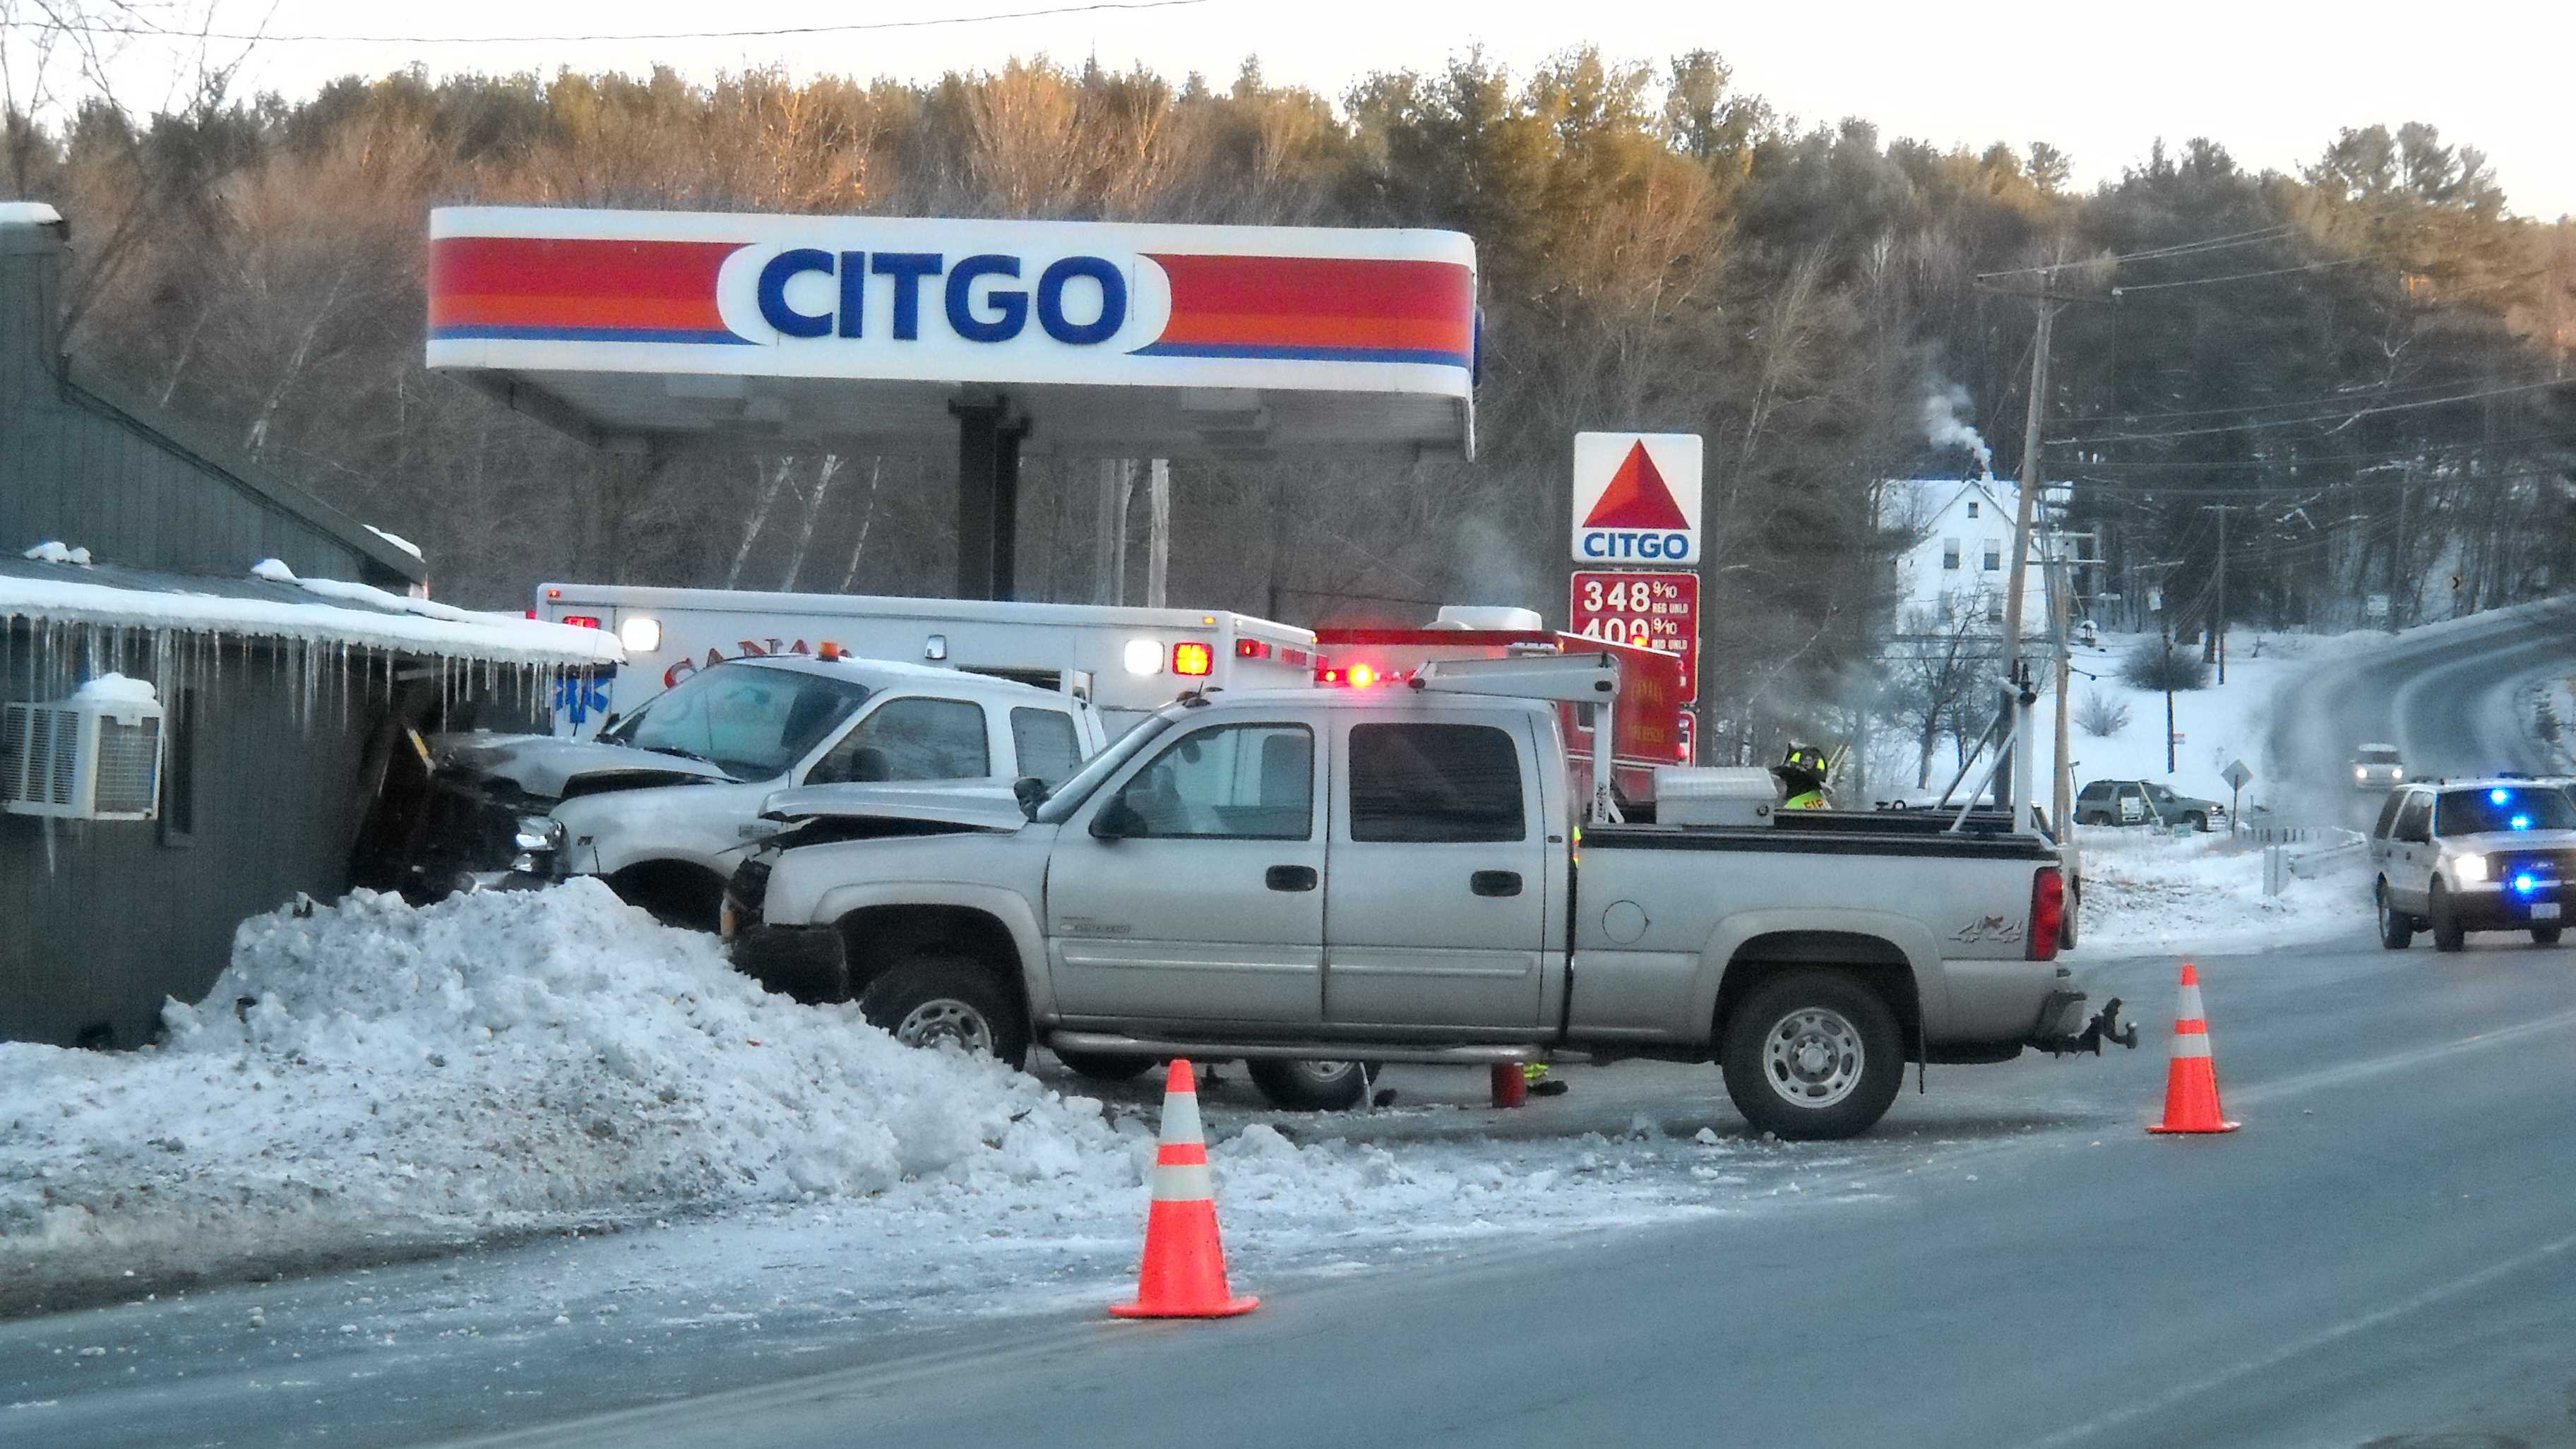 A motorist and a store clerk were injured when two trucks crashed on Route 4 in Canaan, New Hampshire Thursday morning, causing one truck to careen into the Pleasant Valley Store.